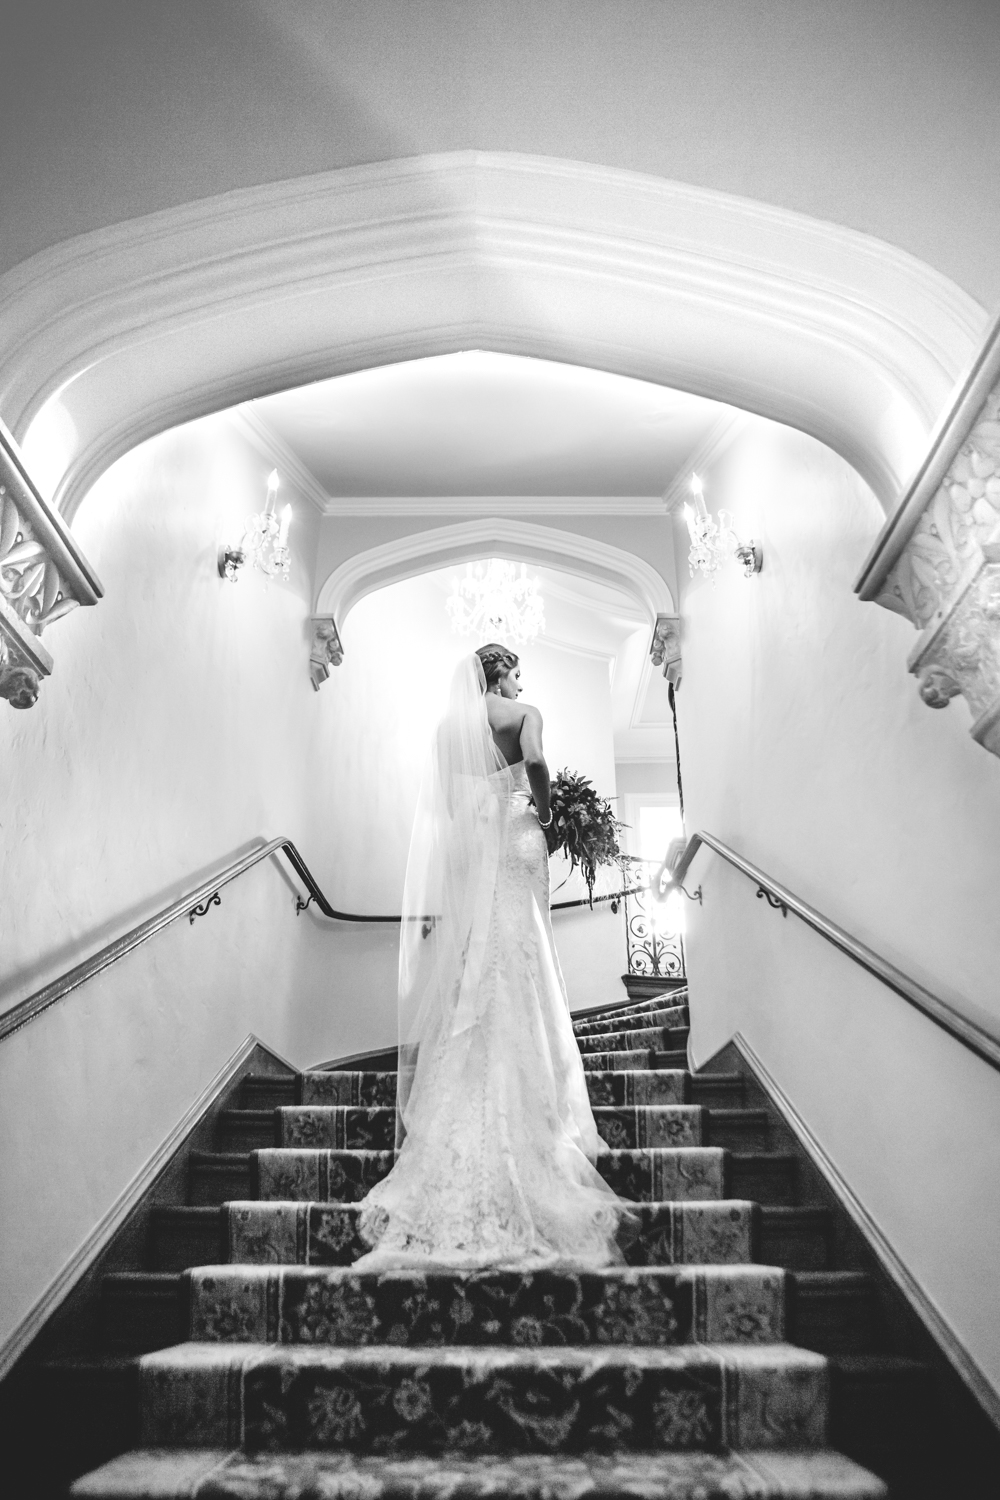 Bride walking up stairs at Highlands Ranch Mansion. Photographed by JMGant Photography.